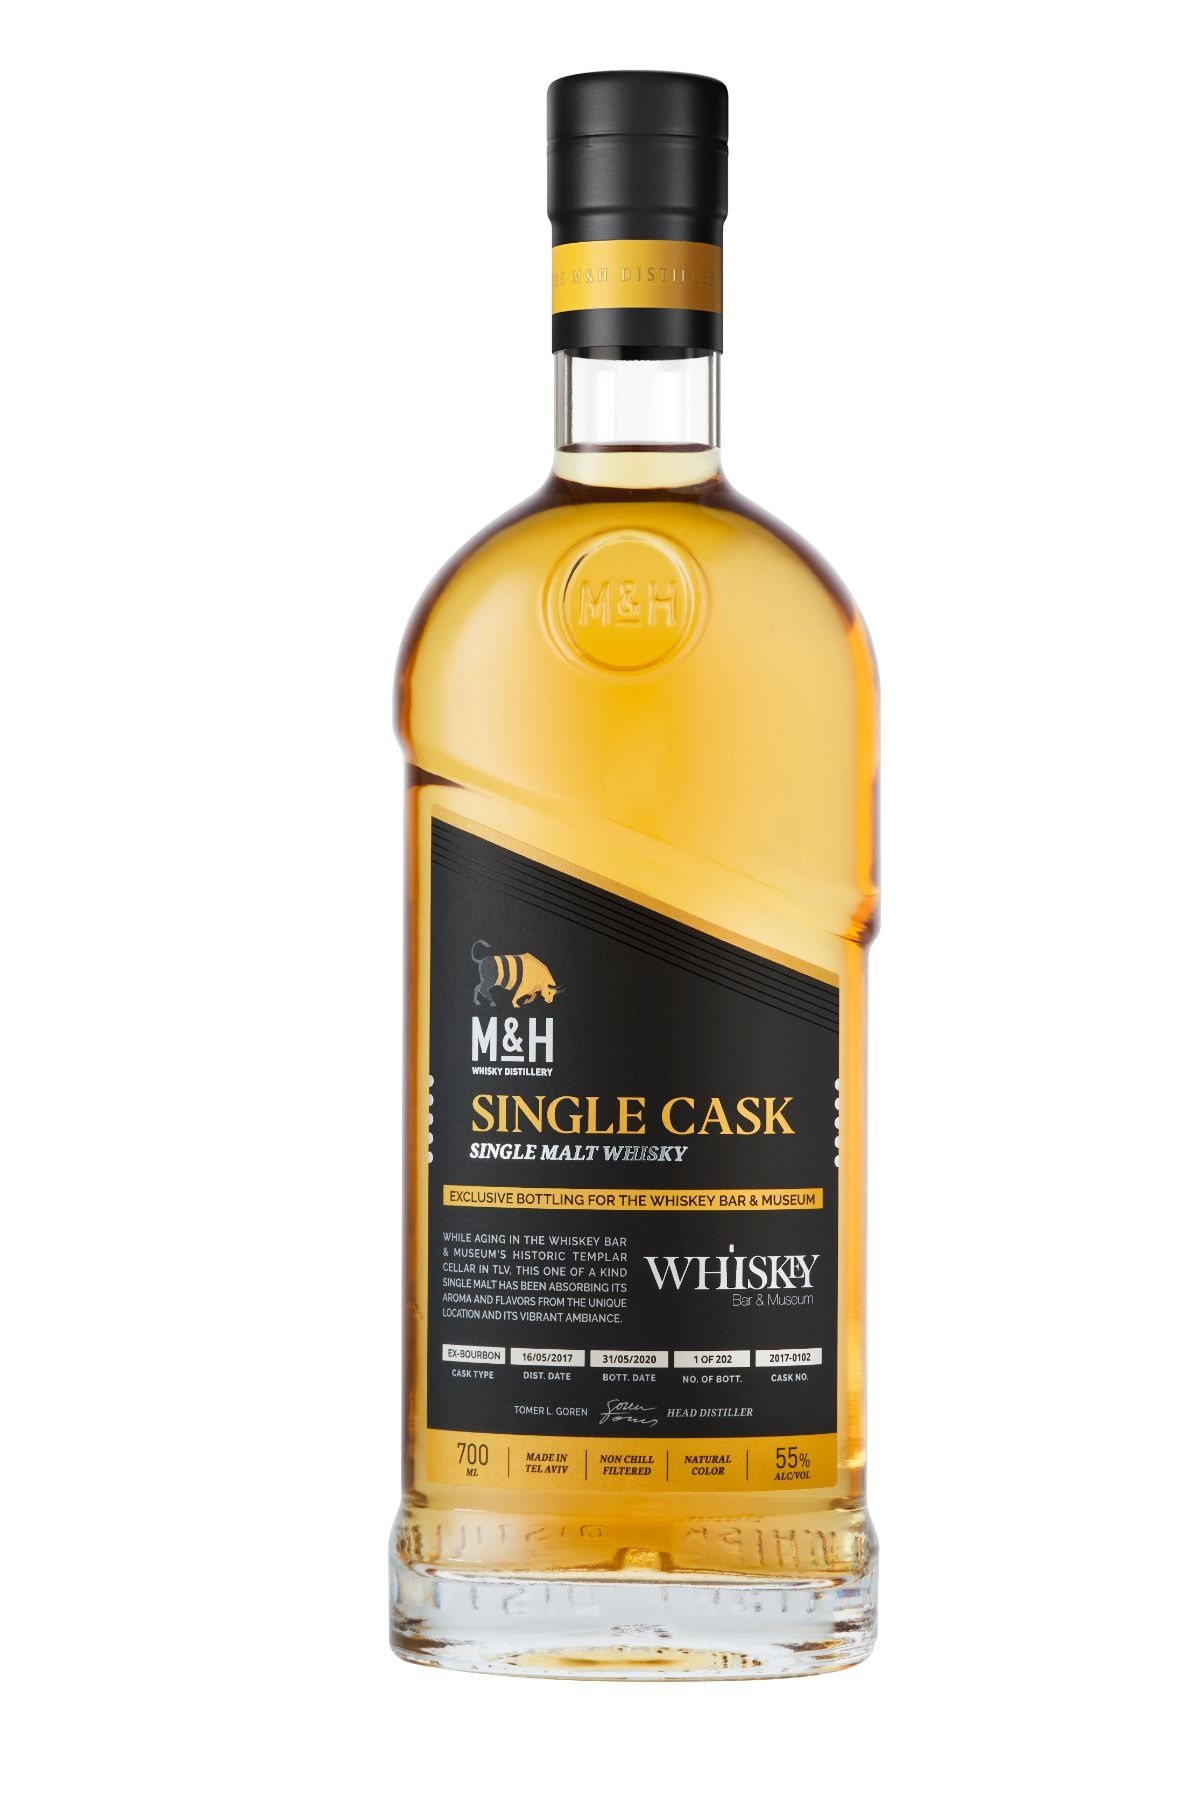 M&H Single Cask. Limited Edition